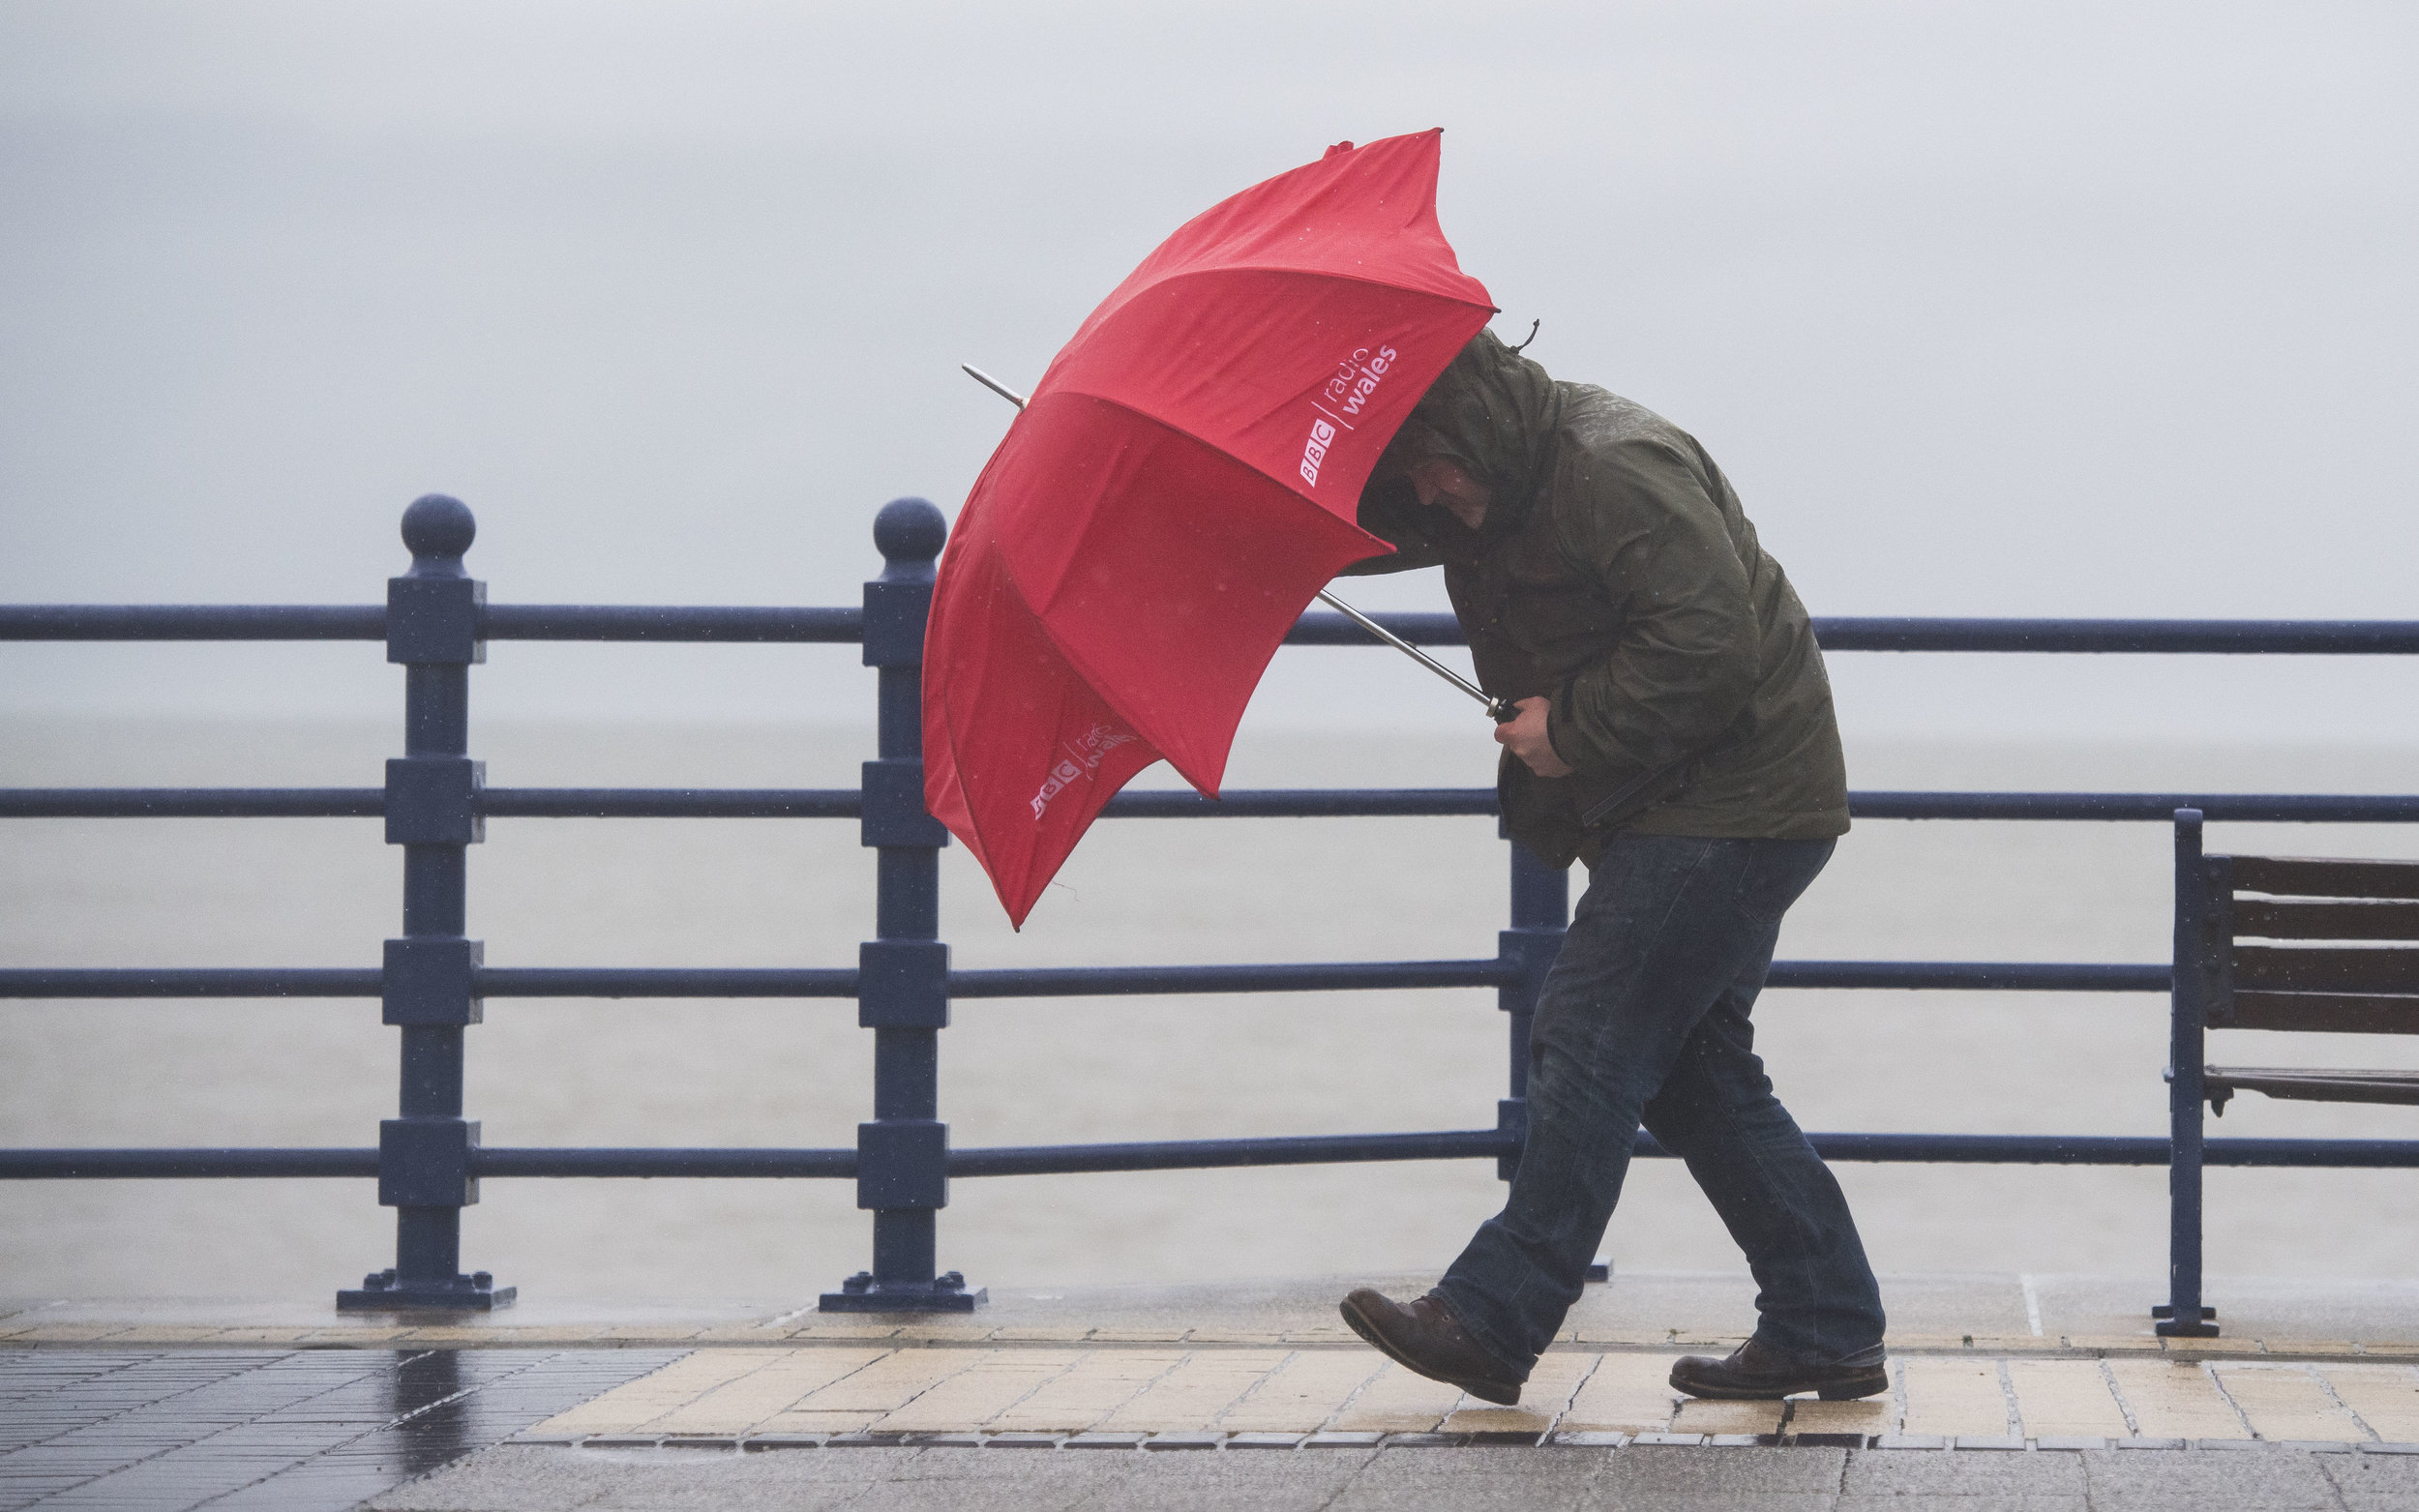 A man battles through wind and rain during Storm Angus at Porthcawl, South Wales. The met office have issued a weather warning for rain for Wales. (Photo by Matthew Horwood)